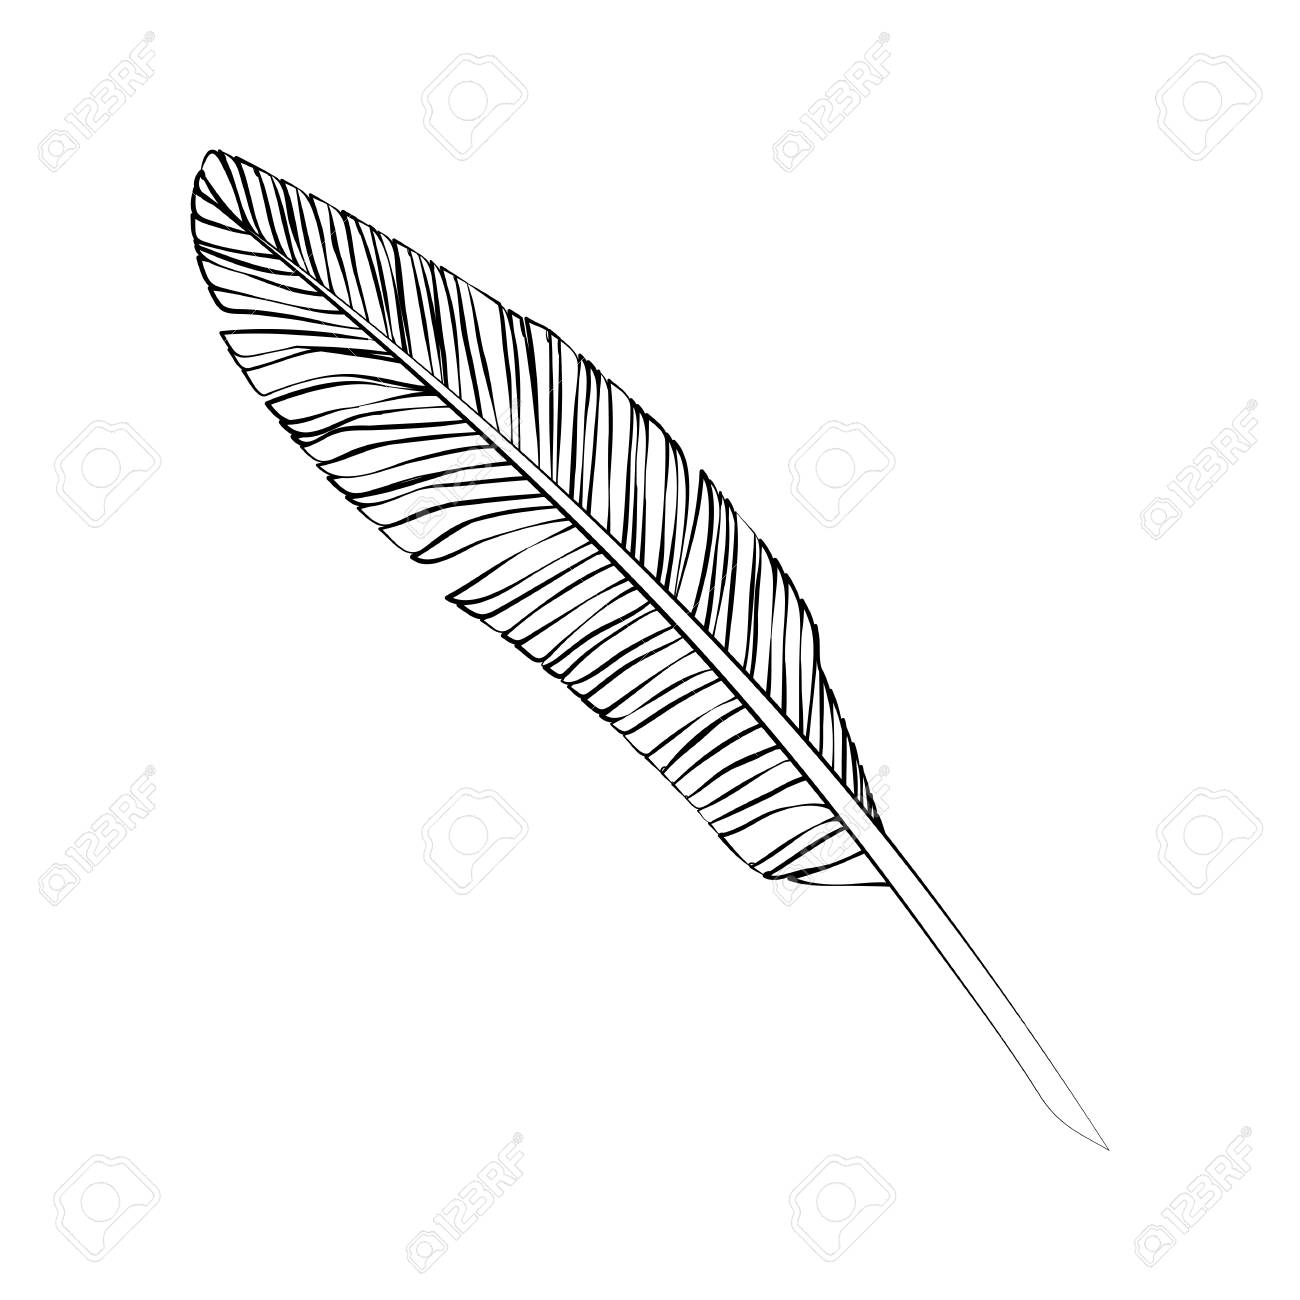 Black Outline Vector Feather On White Background Royalty Free Cliparts Vectors And Stock Illustration Image 55596216 In this tutorial in our series on making selections in photoshop, we'll look at a great way to feather, or soften, selection outlines using photoshop's quick mask mode! black outline vector feather on white background